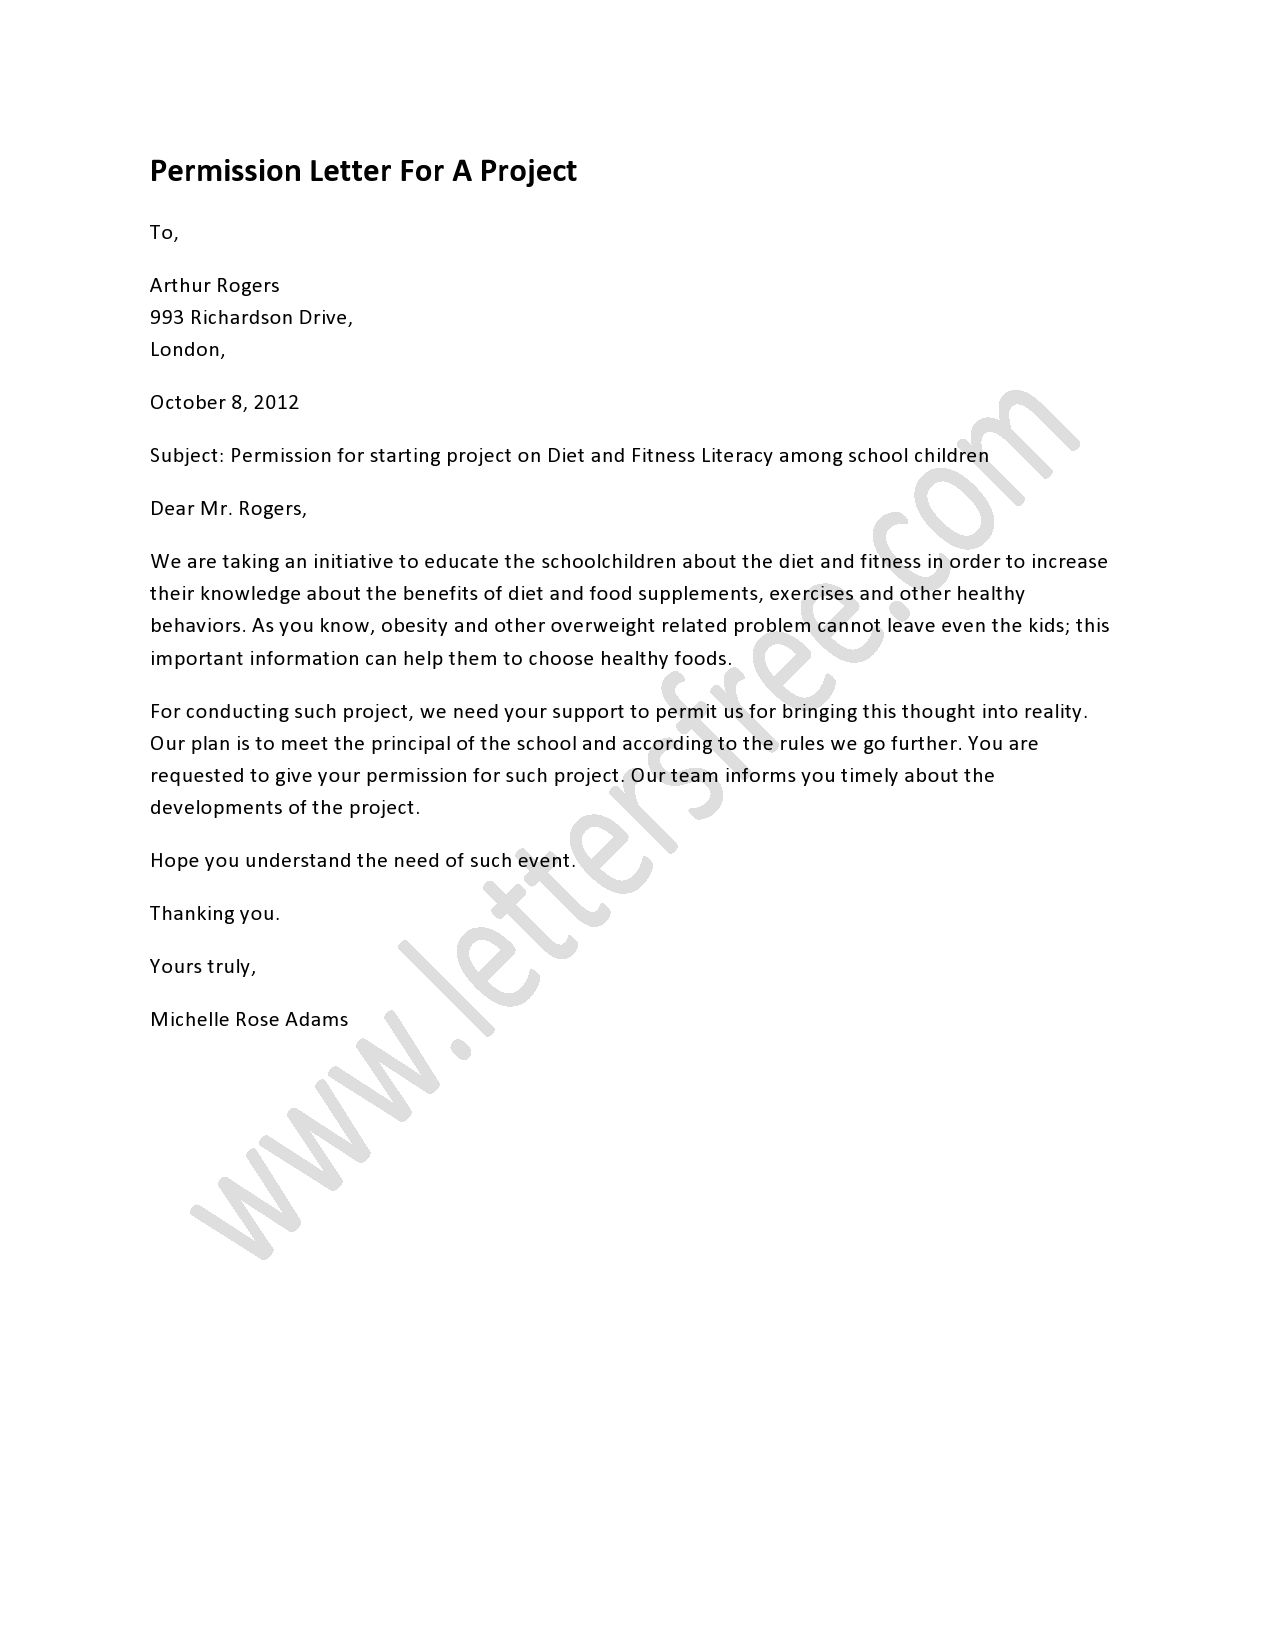 Permission Letter For A Project Free Letters Consent